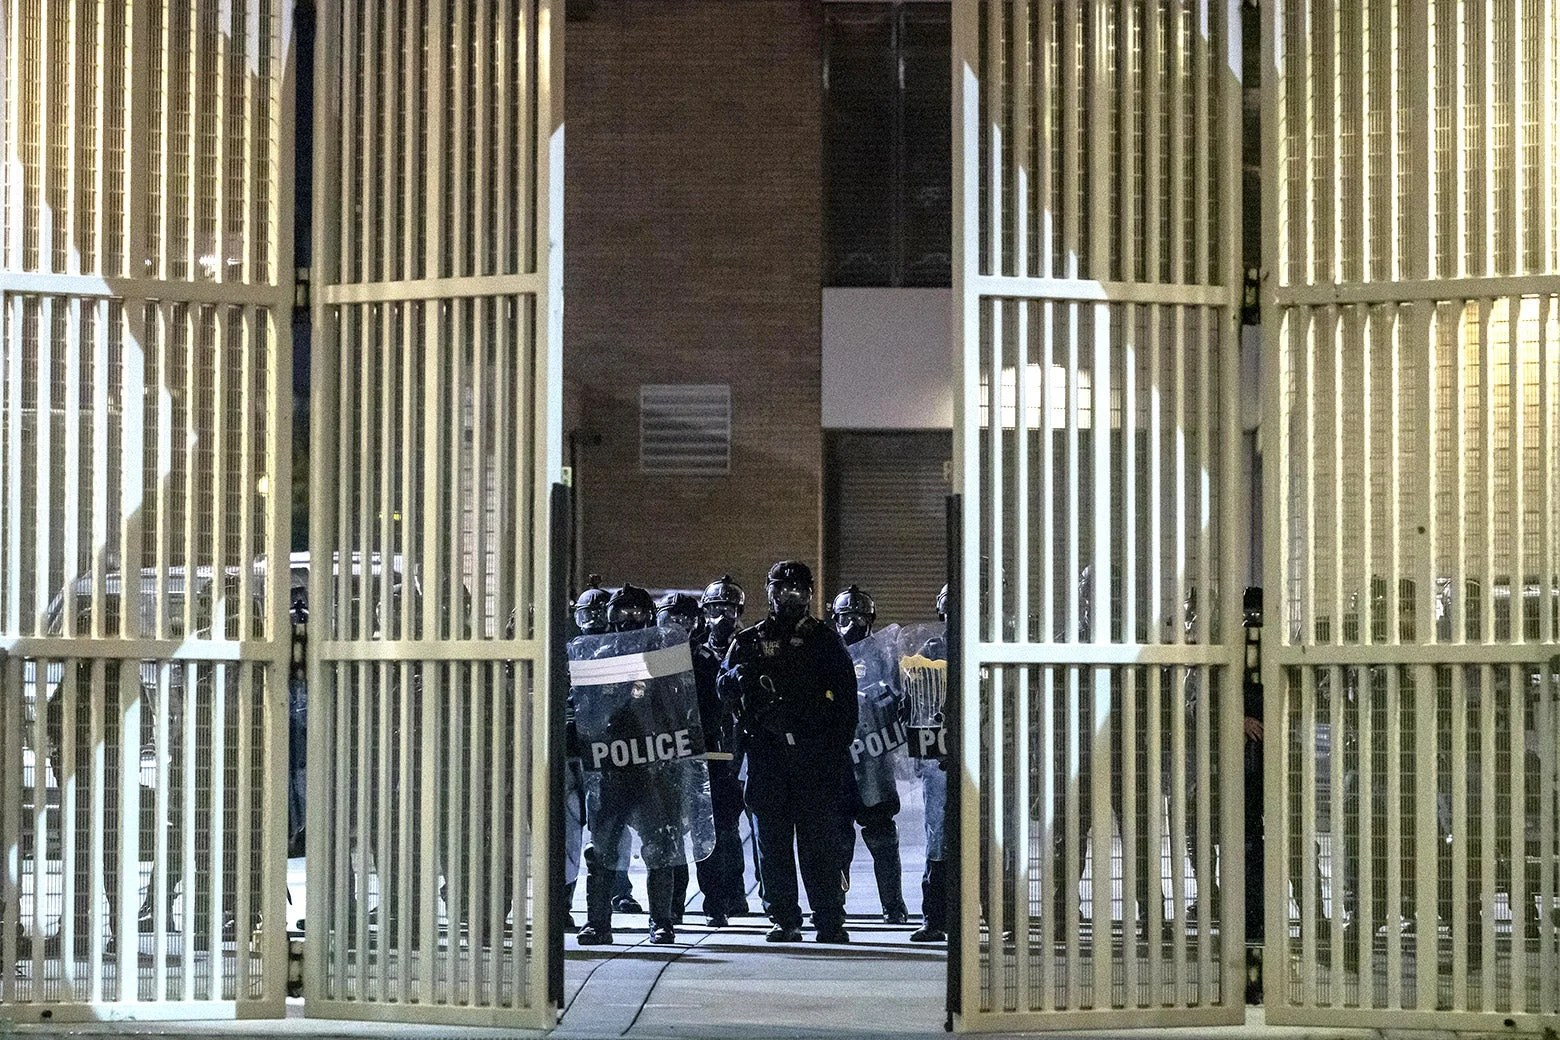 Federal officers guard the front gate of the ICE detention center in Portland, Oregon, during a protest on Sept. 18.